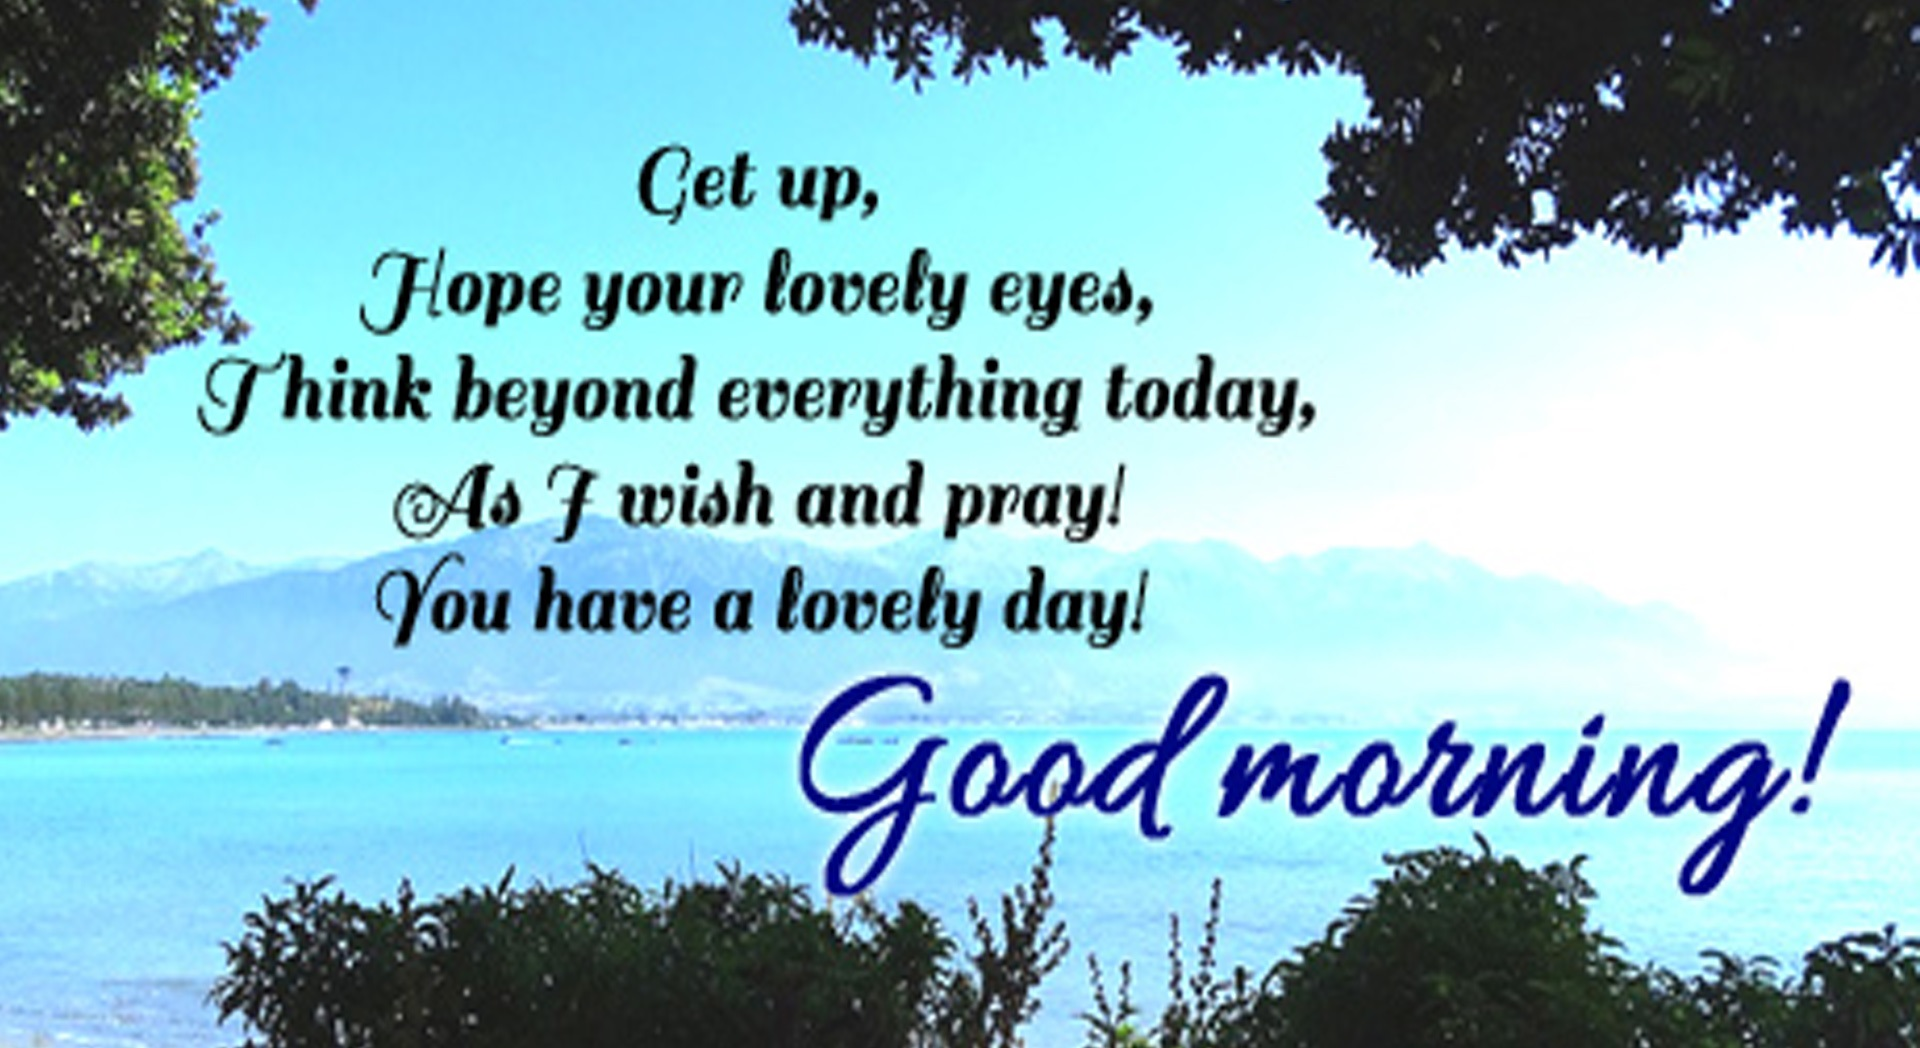 Good Morning Wishes Greetings 2018 Images Free Download